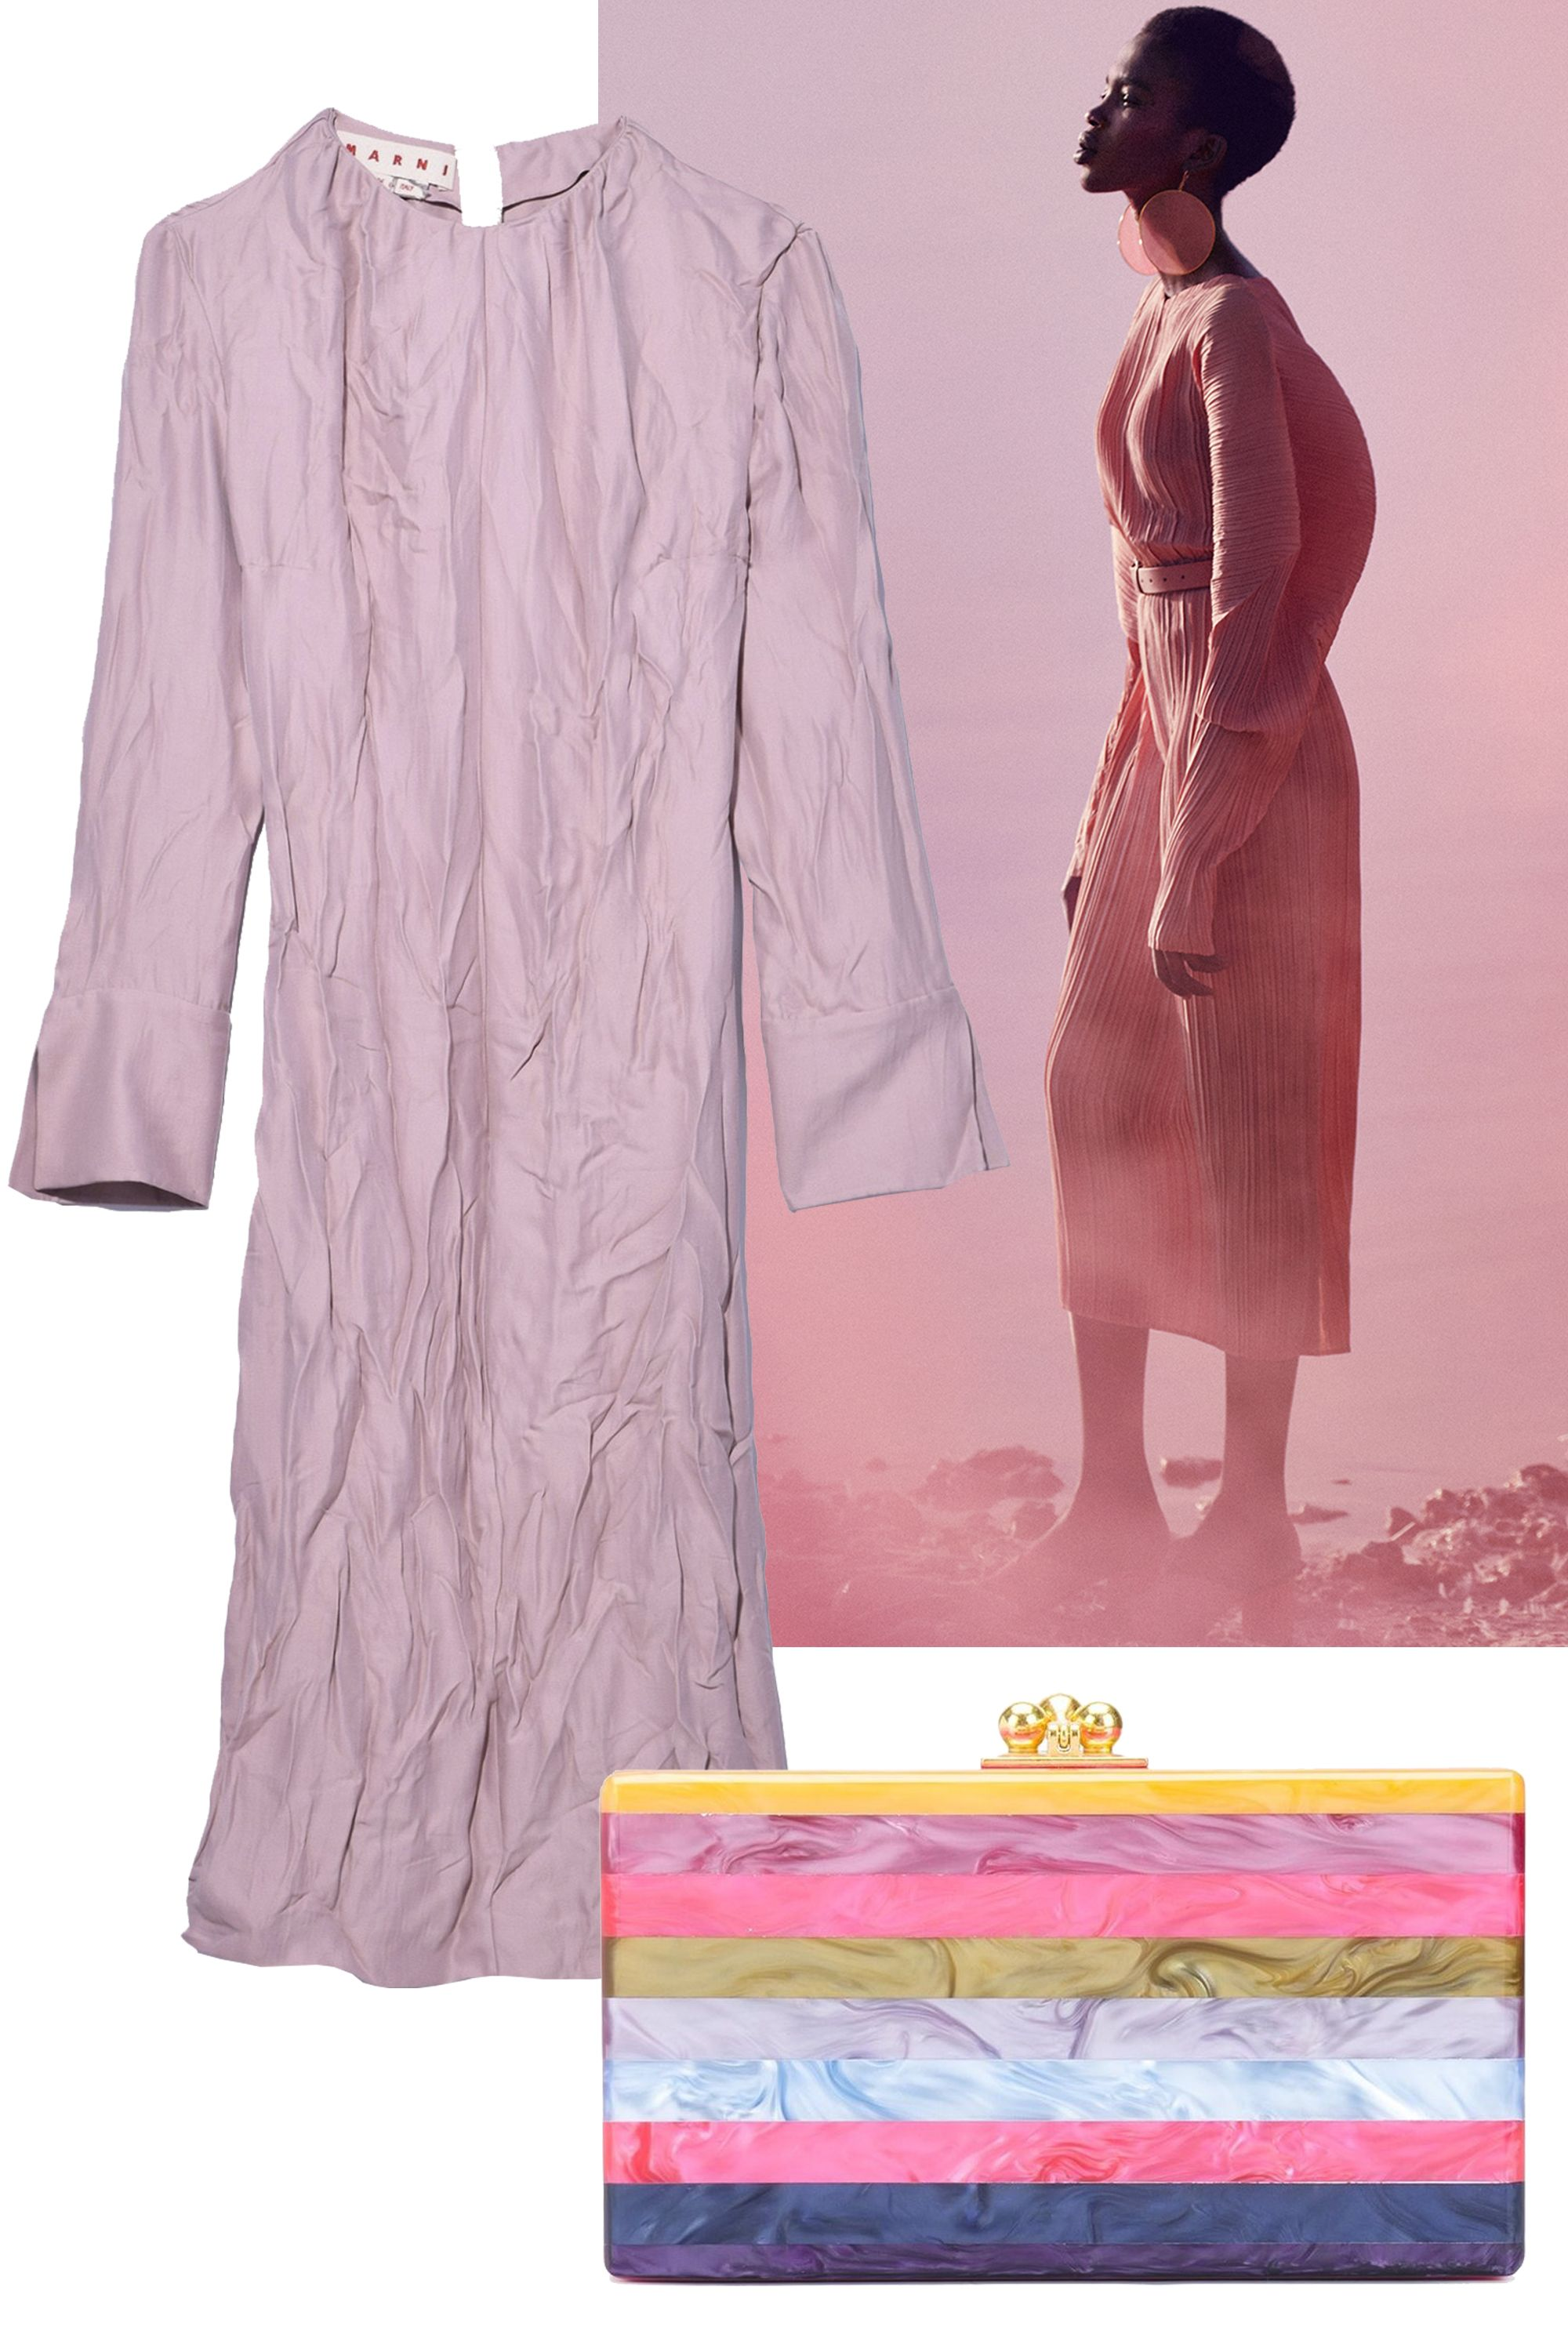 "<p>Channel your inner Parisian girl with an easy frock and chic clutch that's simply effortless. </p><p><em data-verified=""redactor"" data-redactor-tag=""em"">Marni dress, $1,580 , <a href=""https://shop.harpersbazaar.com/designers/marni/long-sleeve-dress-in-rose-powder-11183.html"" data-tracking-id=""recirc-text-link"">shopBAZAAR.com</a>; Edie Parker clutch, $1,295, <a href=""https://shop.harpersbazaar.com/designers/edie-parker/jean-striped-clutch-11192.html"" data-tracking-id=""recirc-text-link"">shopBAZAAR.com</a>.</em><br></p>"